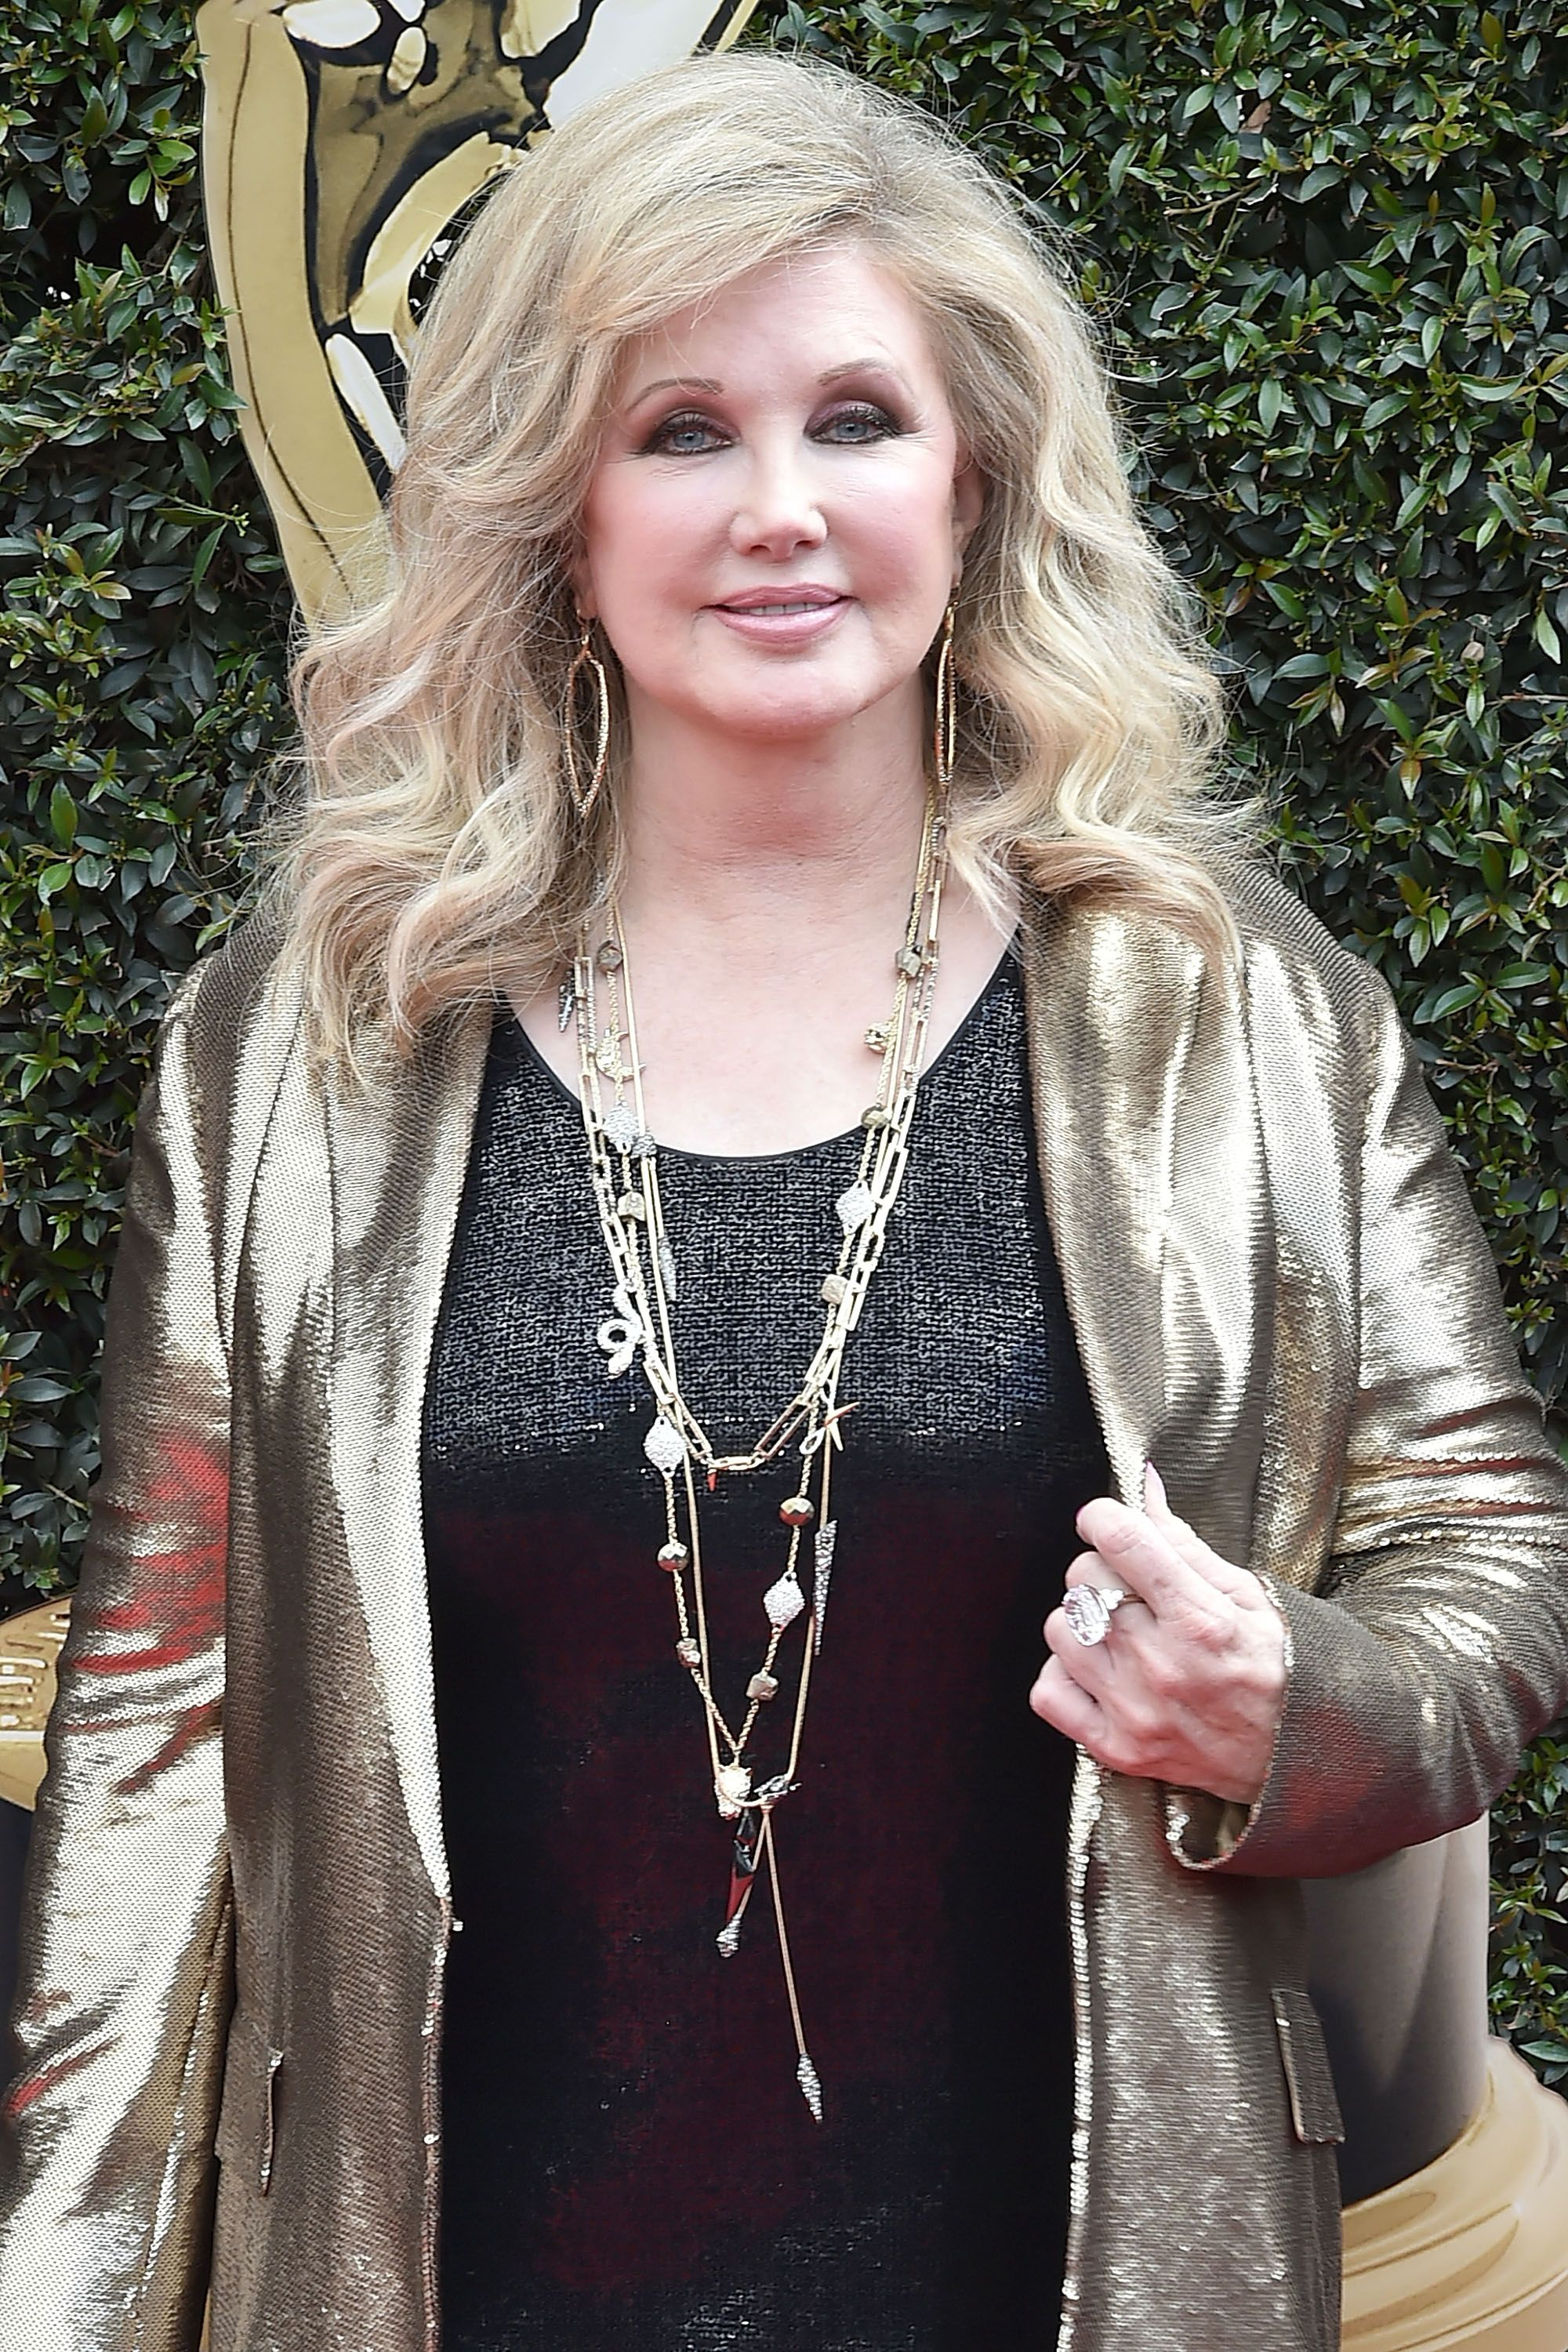 Morgan Fairchild attends the 2018 Daytime Emmy Awards Arrivals at Pasadena Civic Auditorium on April 29, 2018 in Pasadena, California. | Source: Getty Images